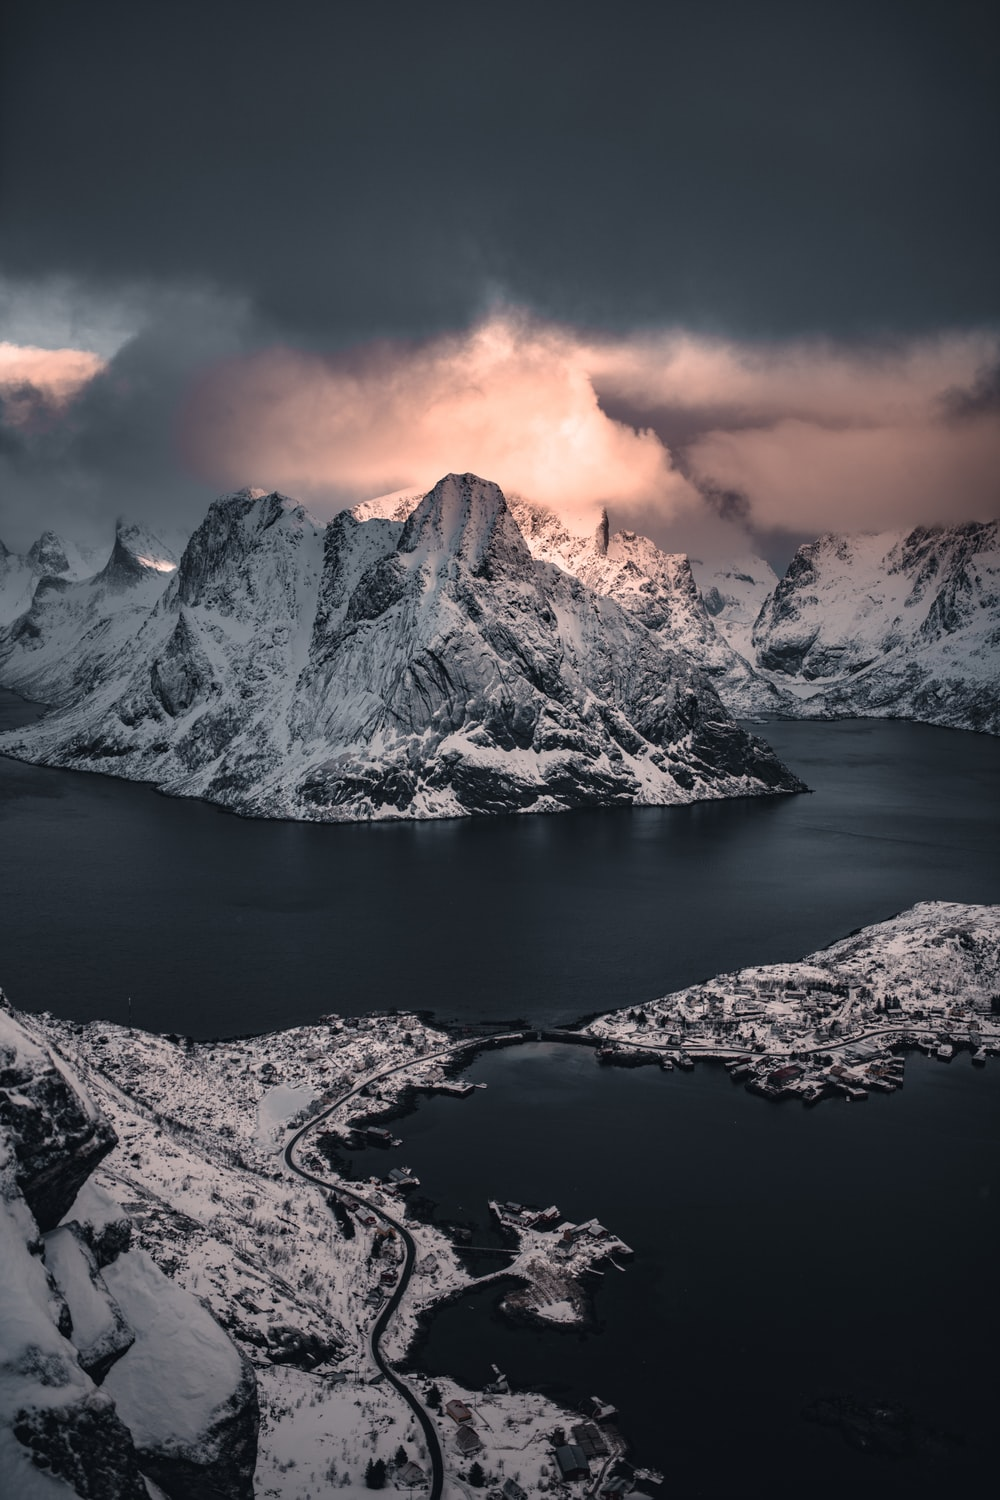 snow covered mountain near body of water during sunset